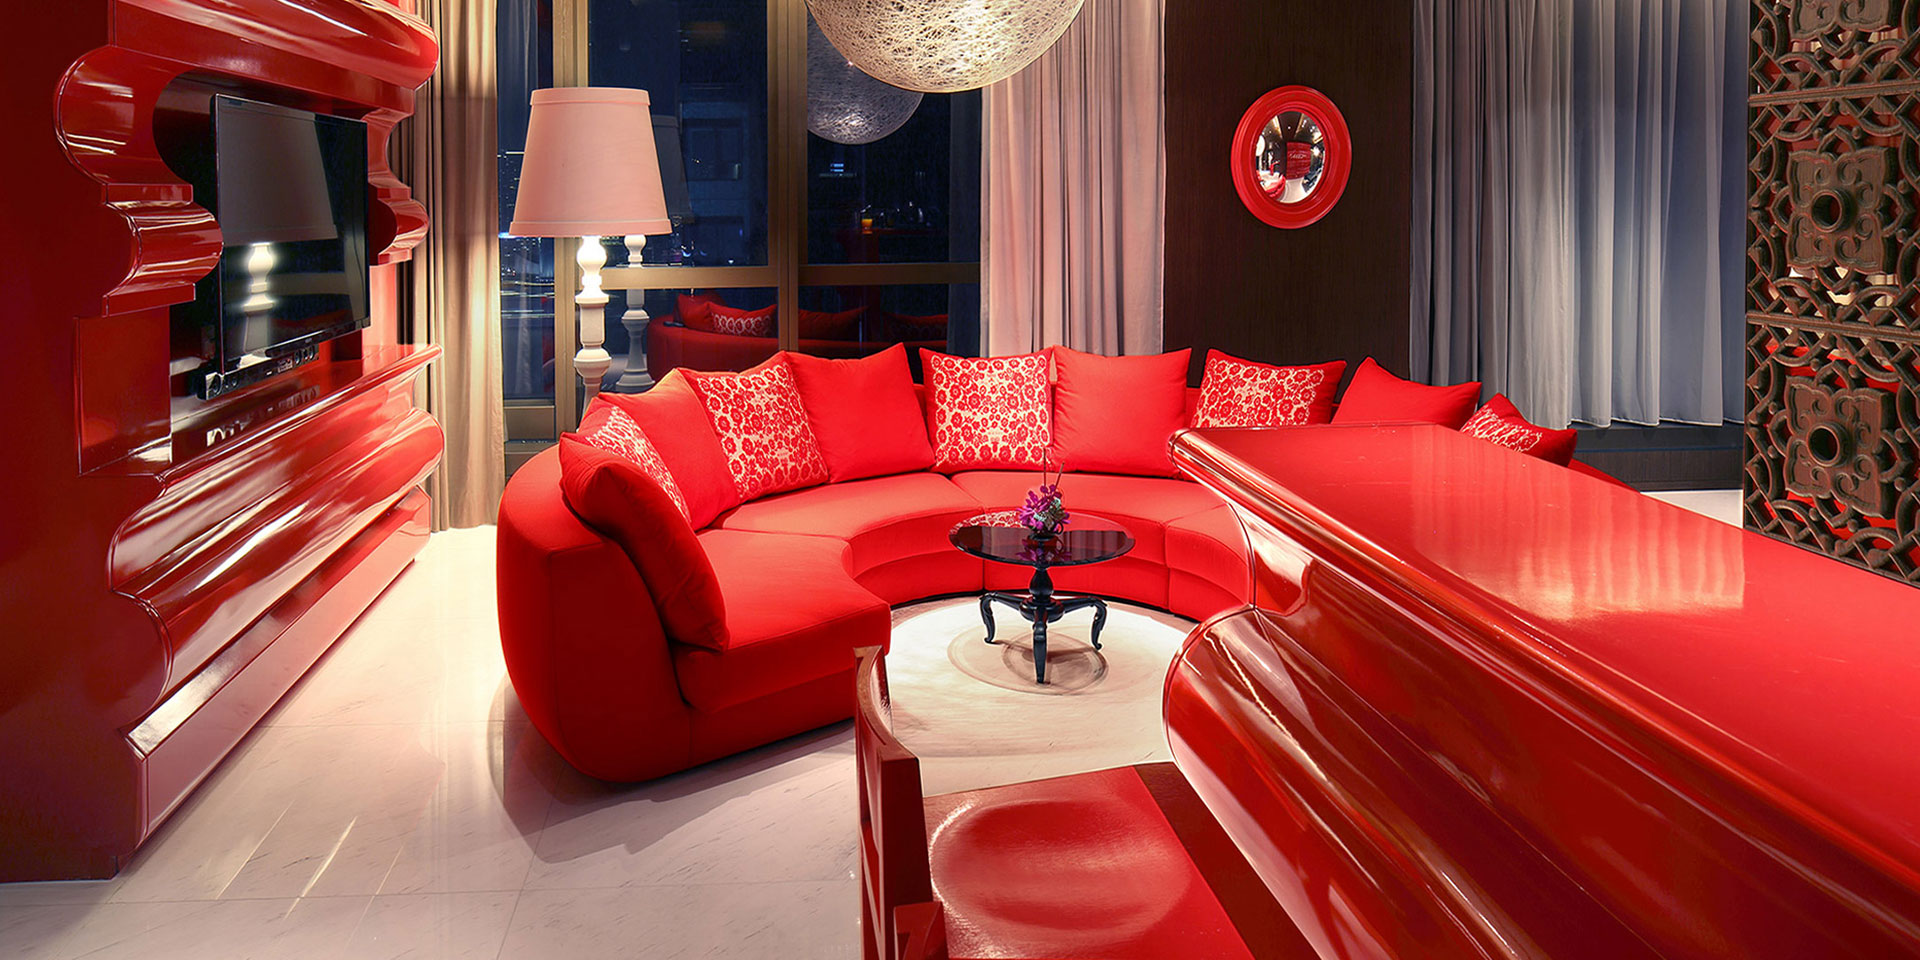 Red sofa with red cushions, red bar top with red high chairs, and red TV console in an Oriental Chinese living room